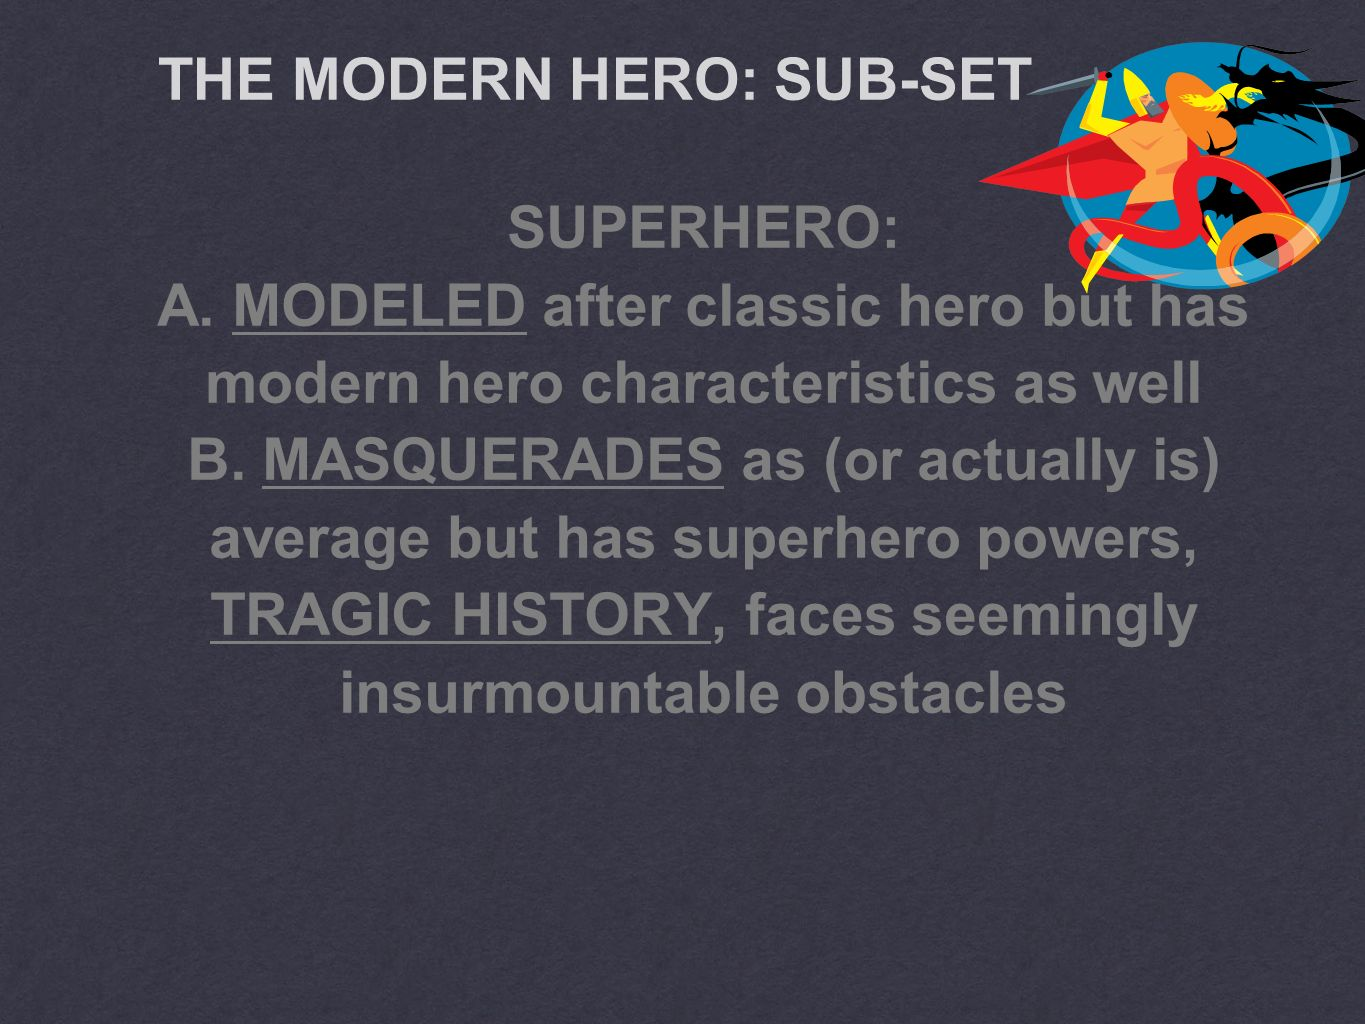 THE MODERN HERO MODERN HERO: a COMMON MAN isnt thought of as FLAWED didnt ASK to be a hero RIGHT PLACE at the right time makes a SACRIFICE because it is the right thing to do or for honor